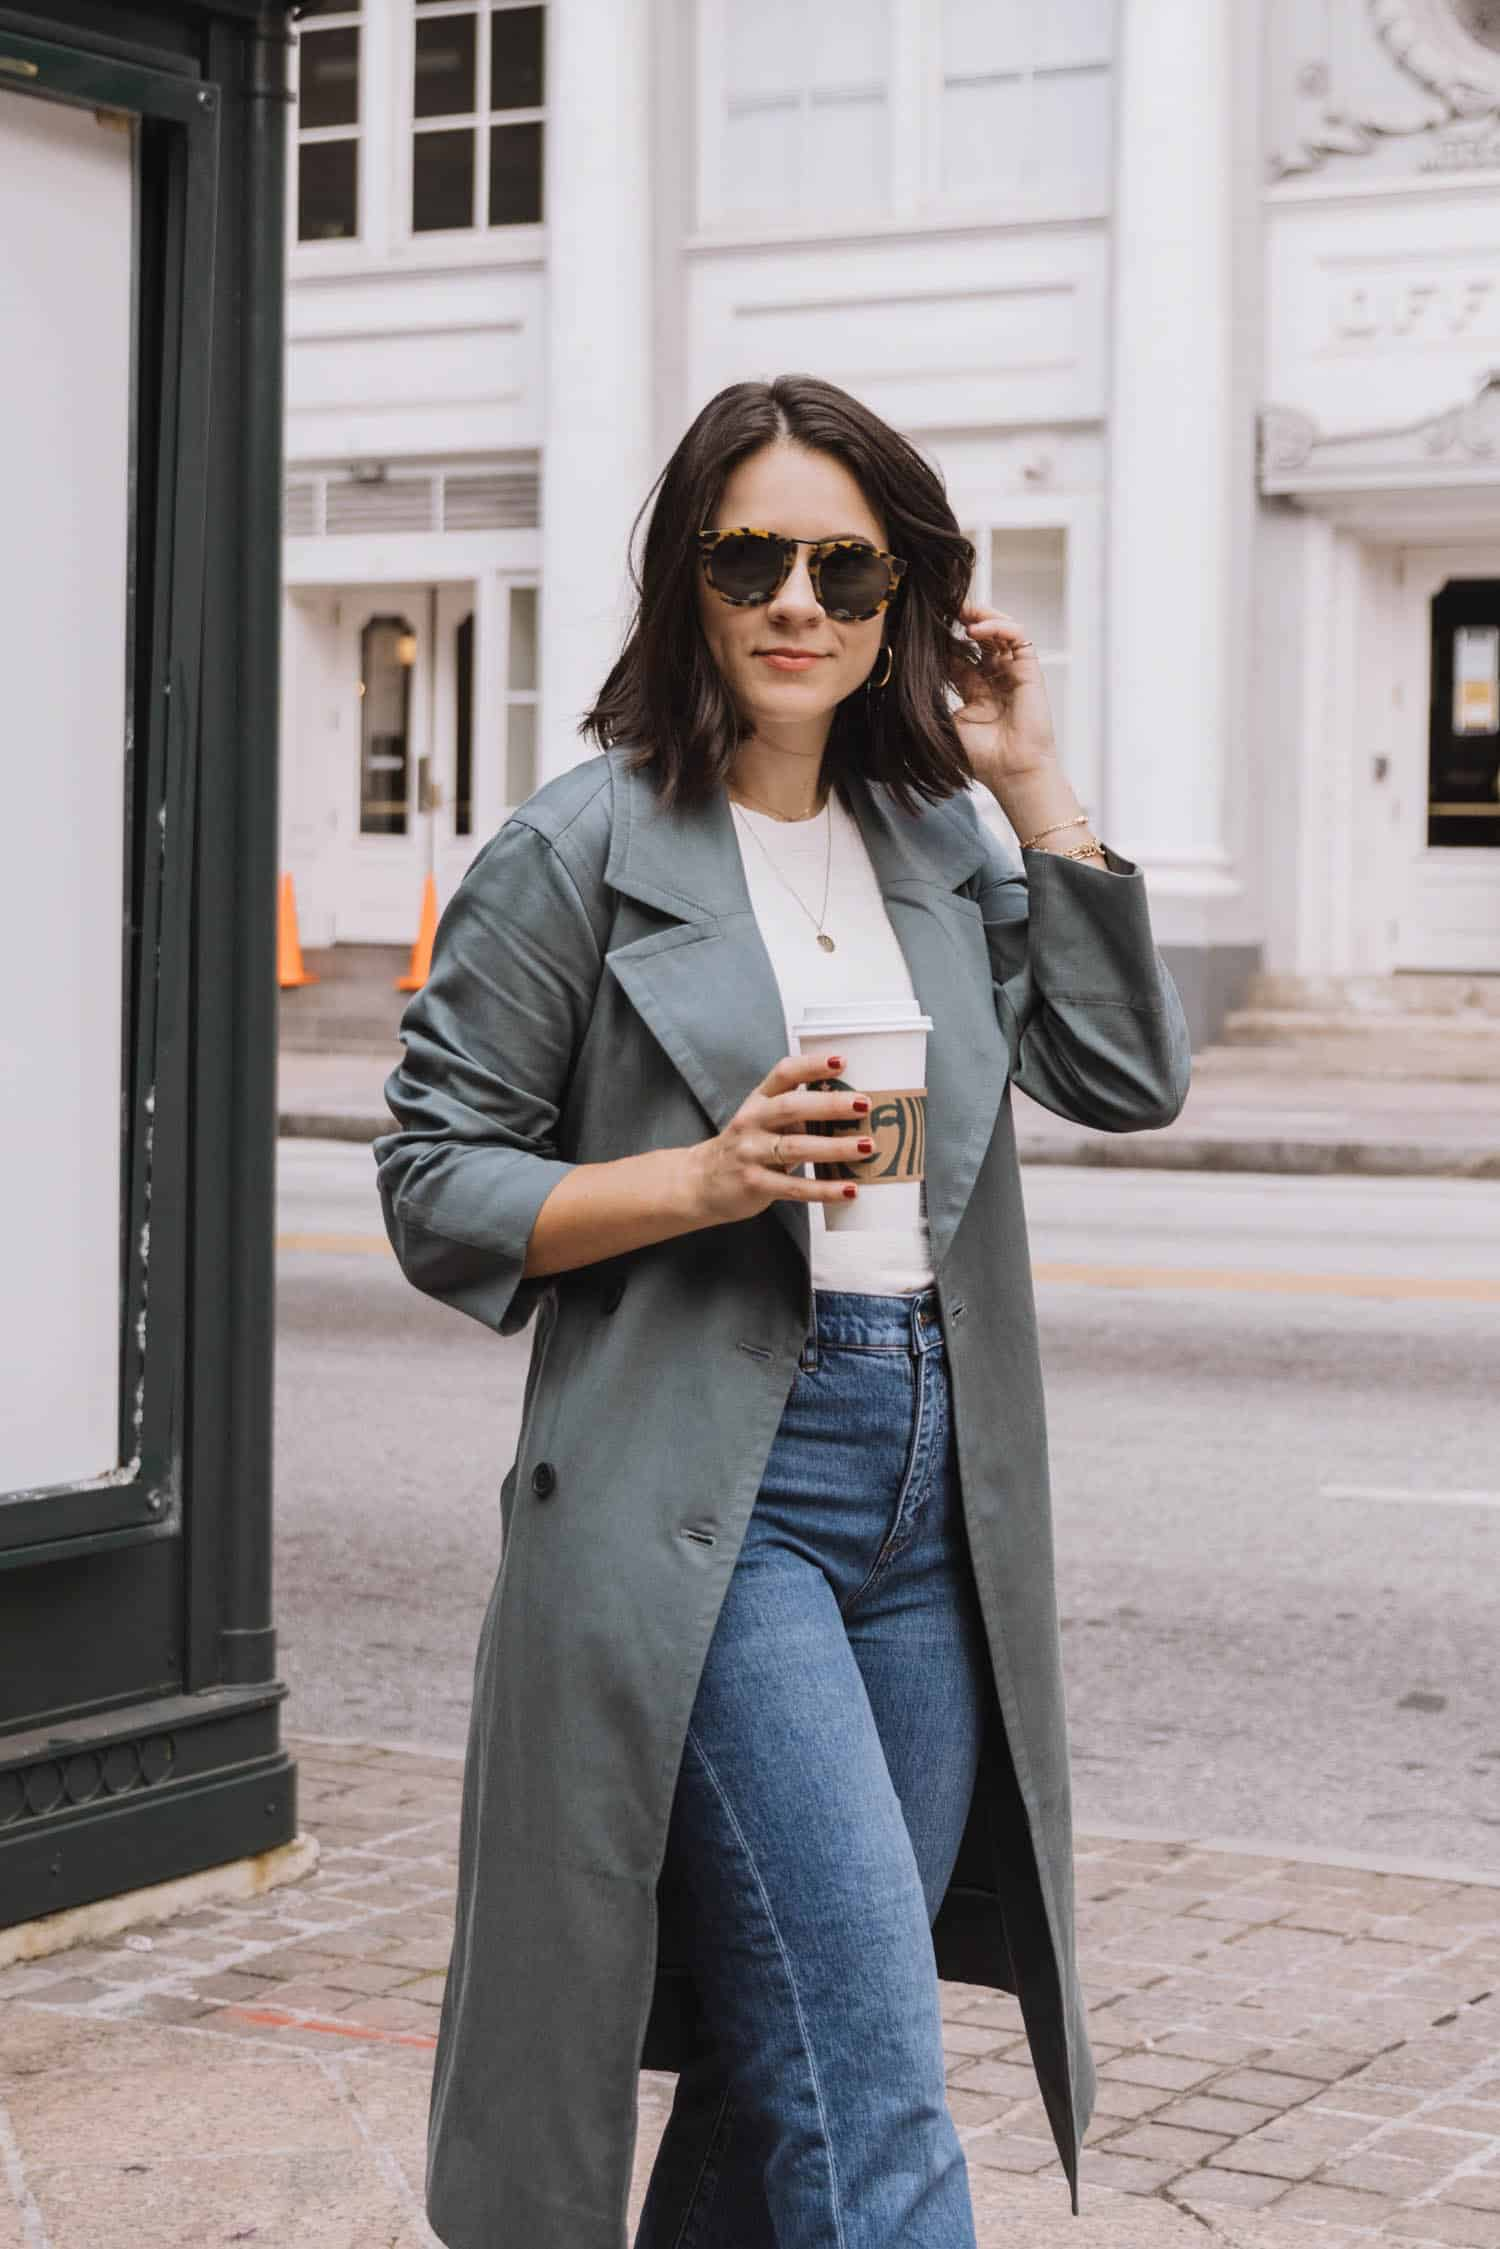 How to style a trench coat for early fall